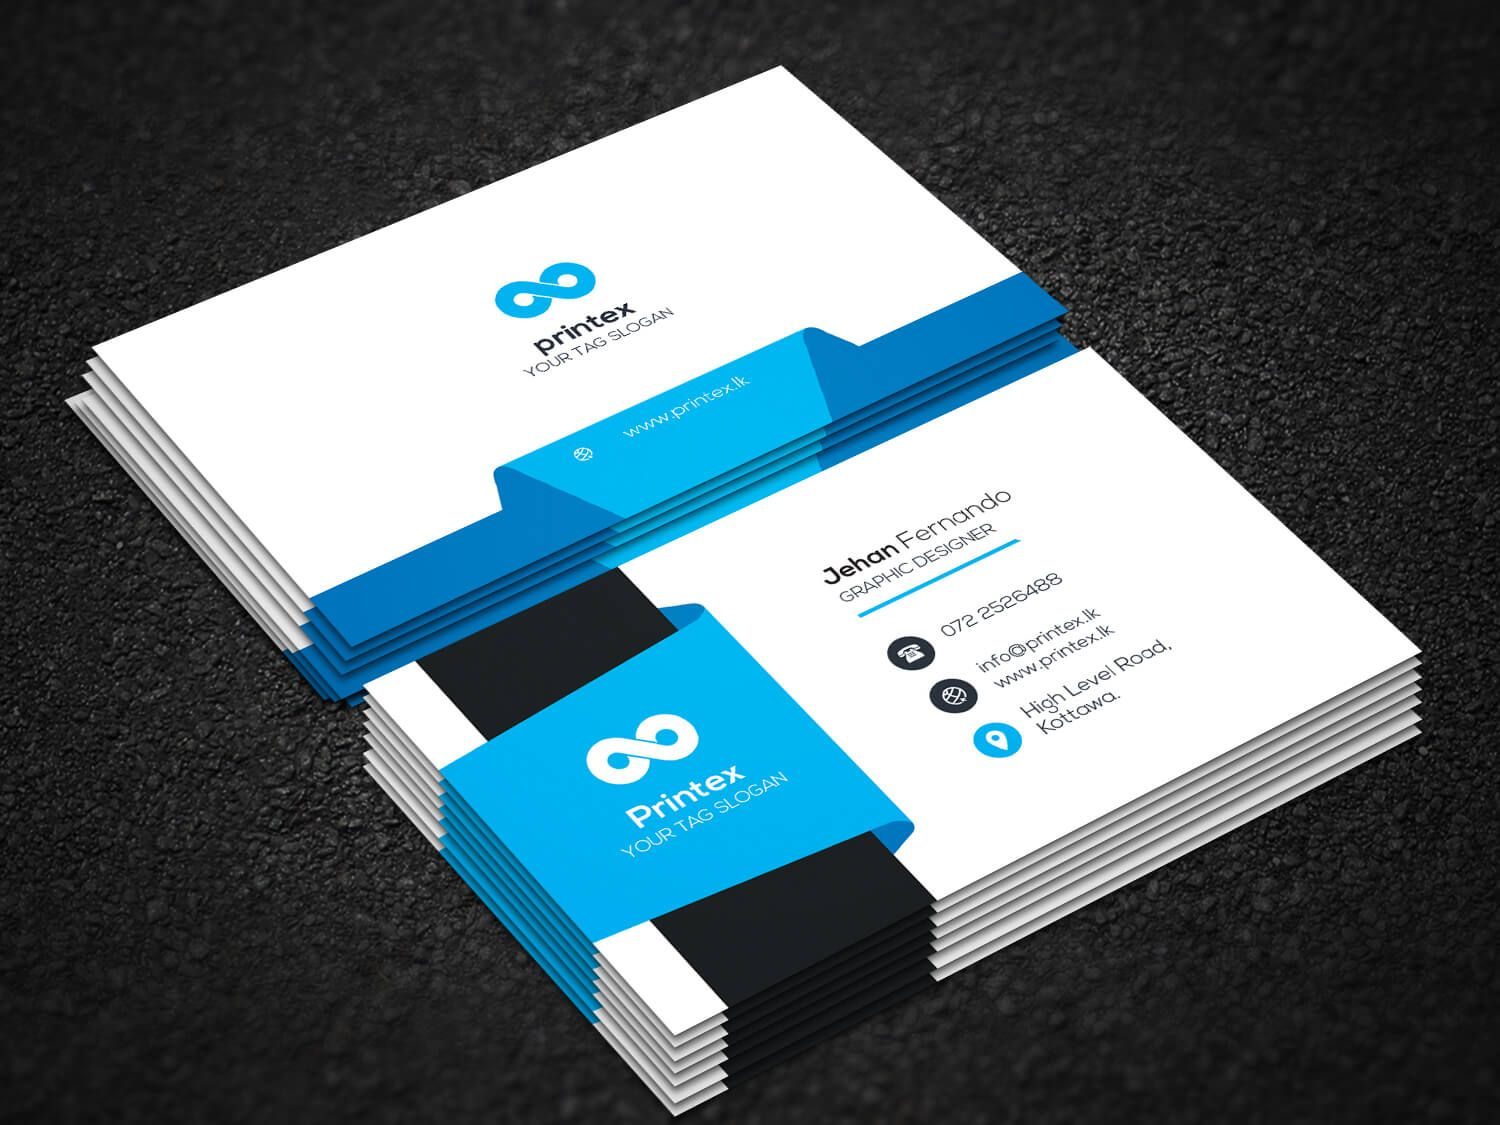 Best Business Card Design Company Online Easy Services Club Cool Business Cards Business Card Design Business Cards